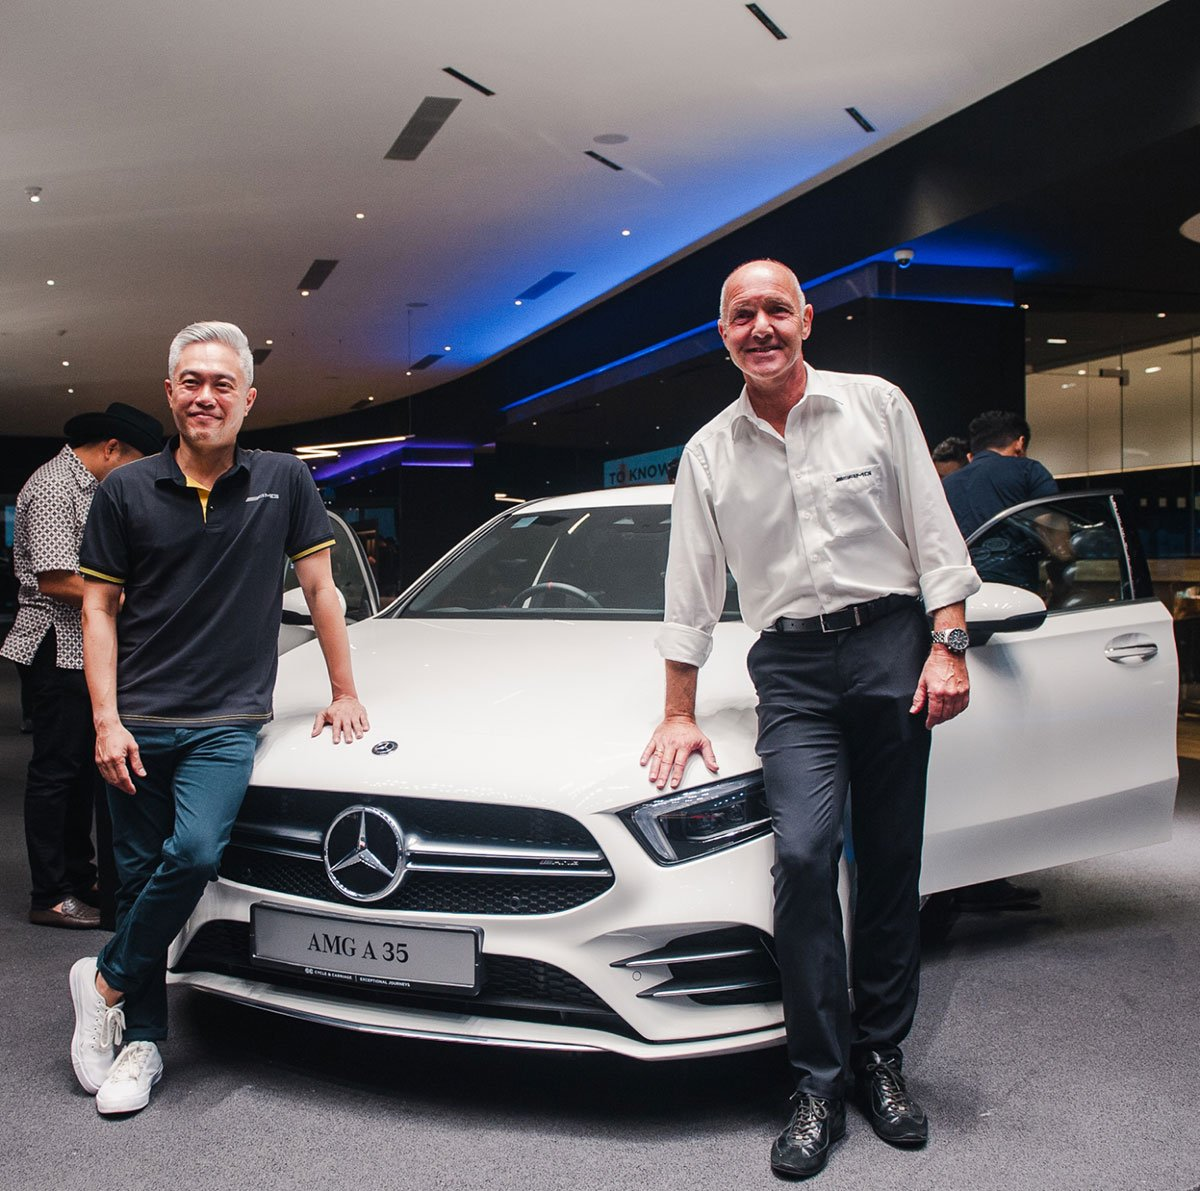 CYCLE & CARRIAGE HOSTS EXCLUSIVE PREVIEW OF AMG A35 SEDAN FOR AMG OWNERS COMMUNITY